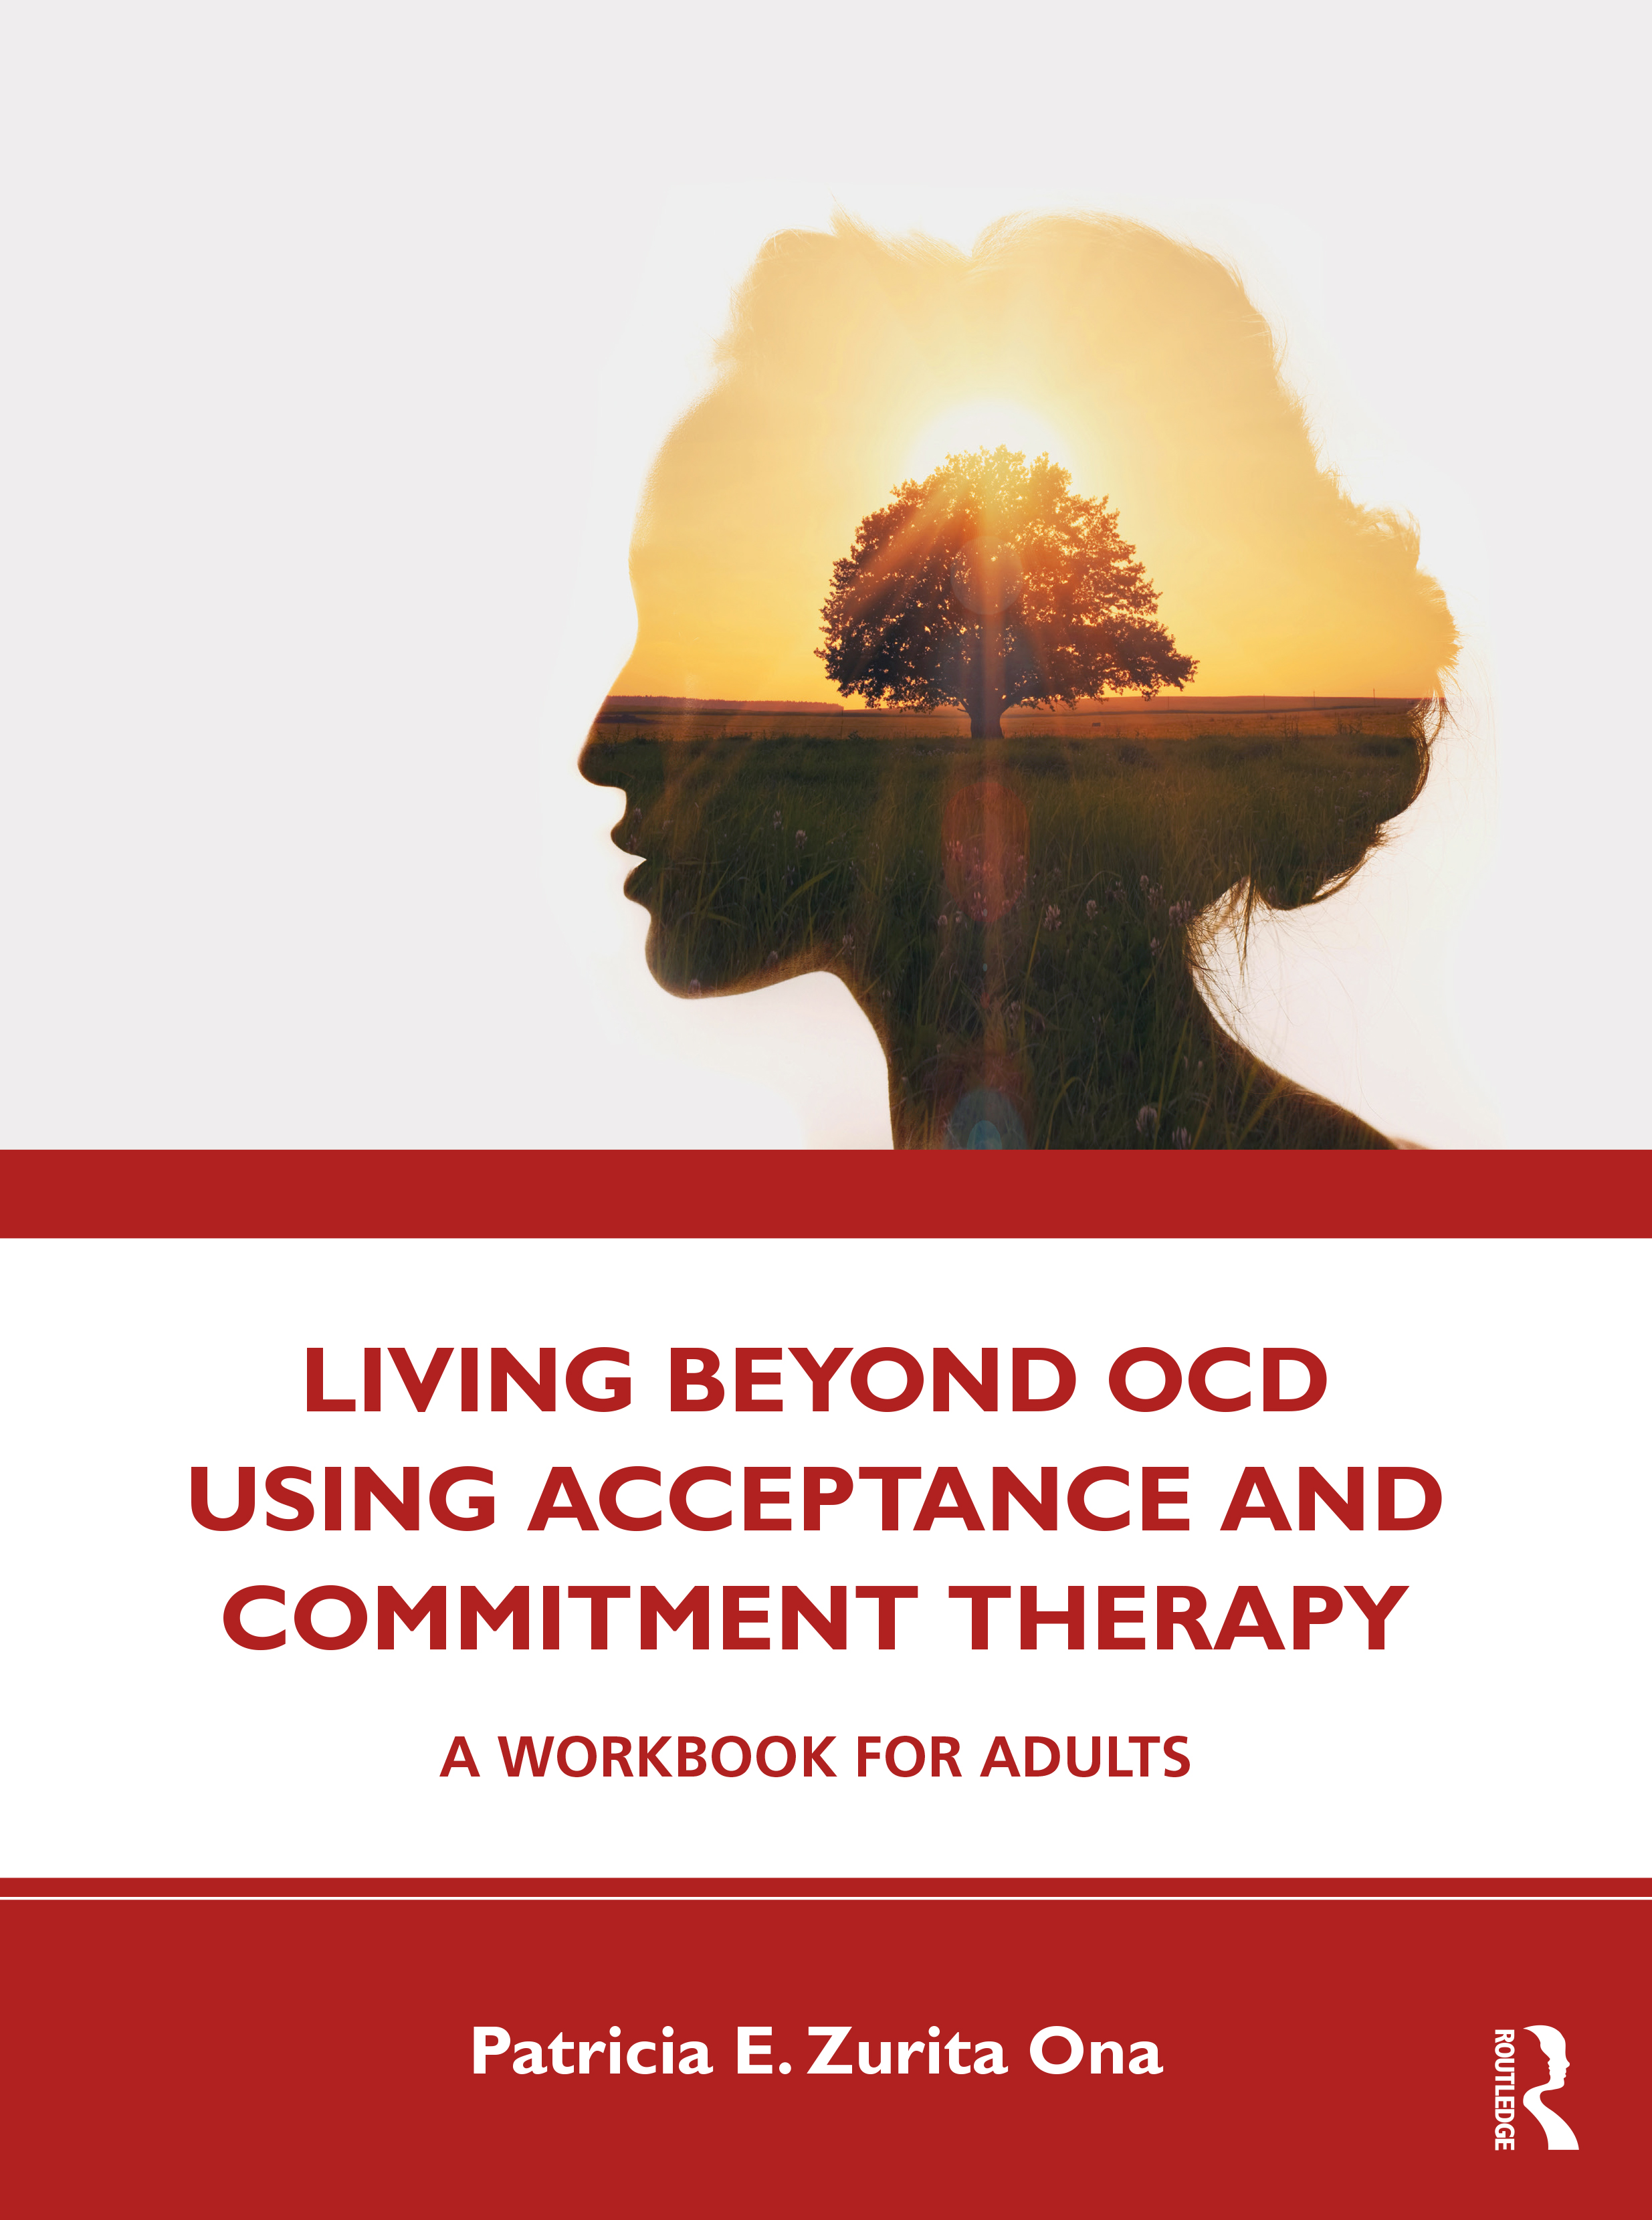 Living Beyond OCD Using Acceptance and Commitment Therapy: A Workbook for Adults book cover